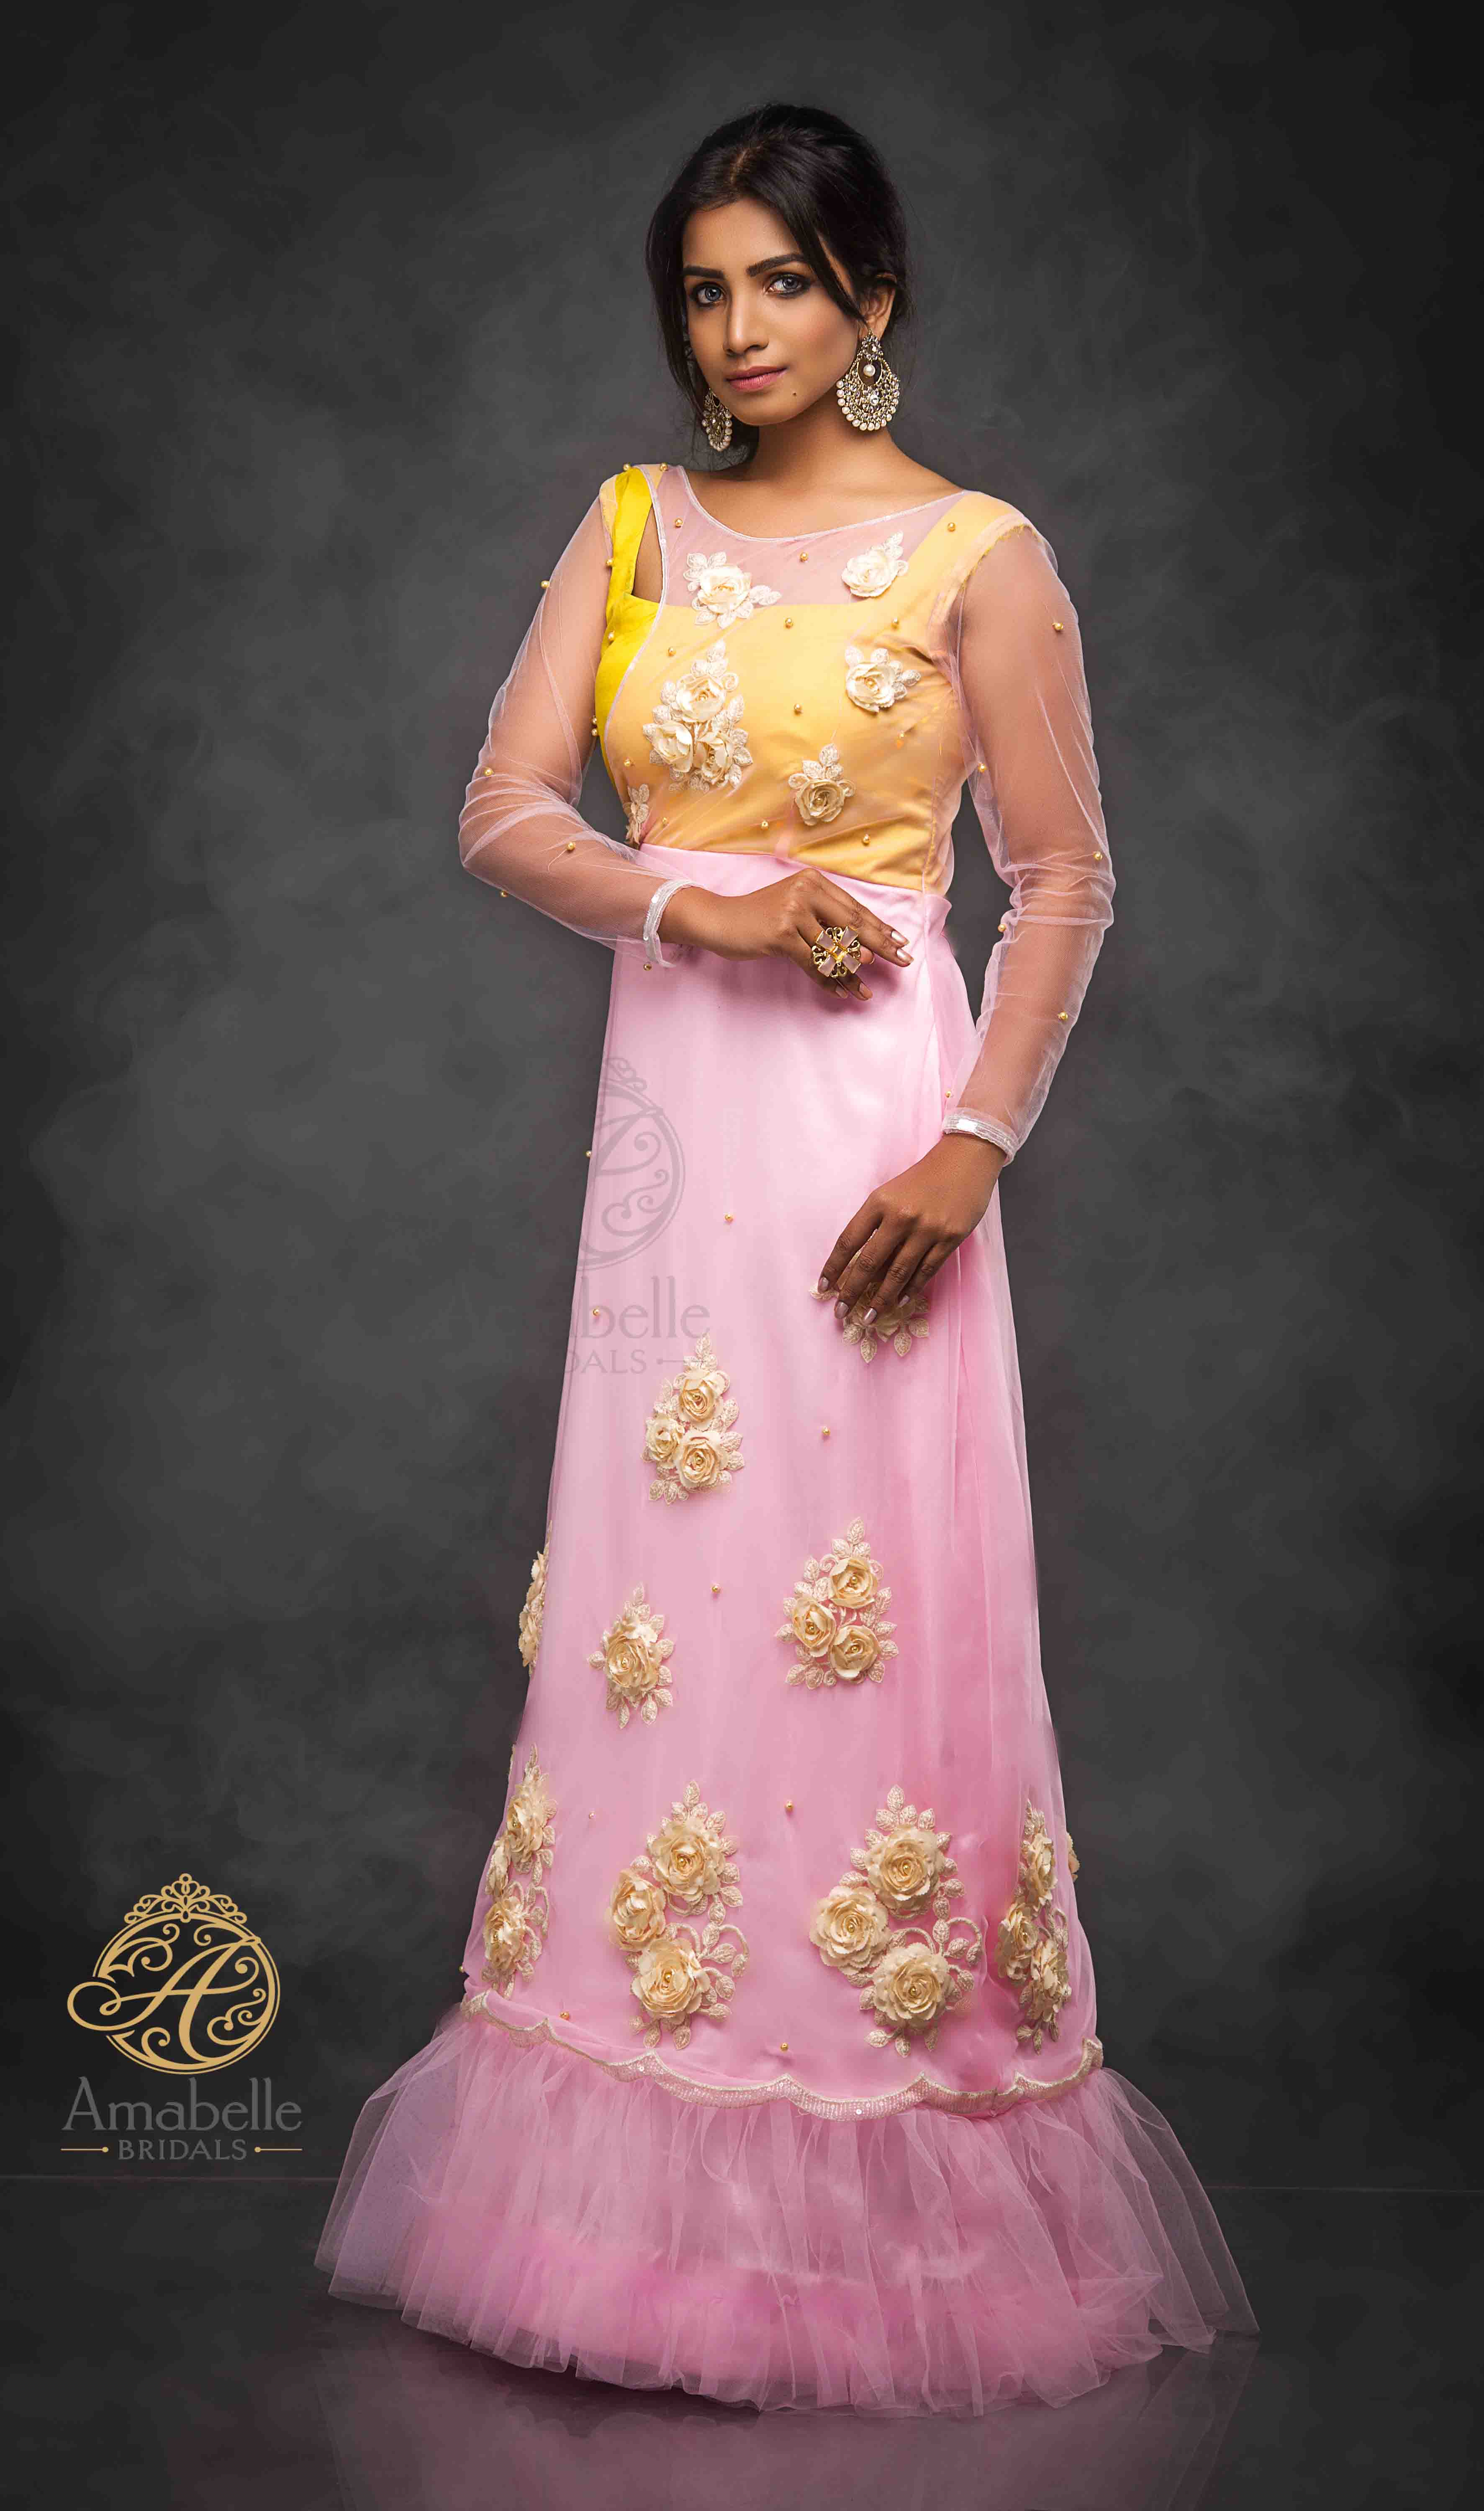 Pink and yellow A-line gown